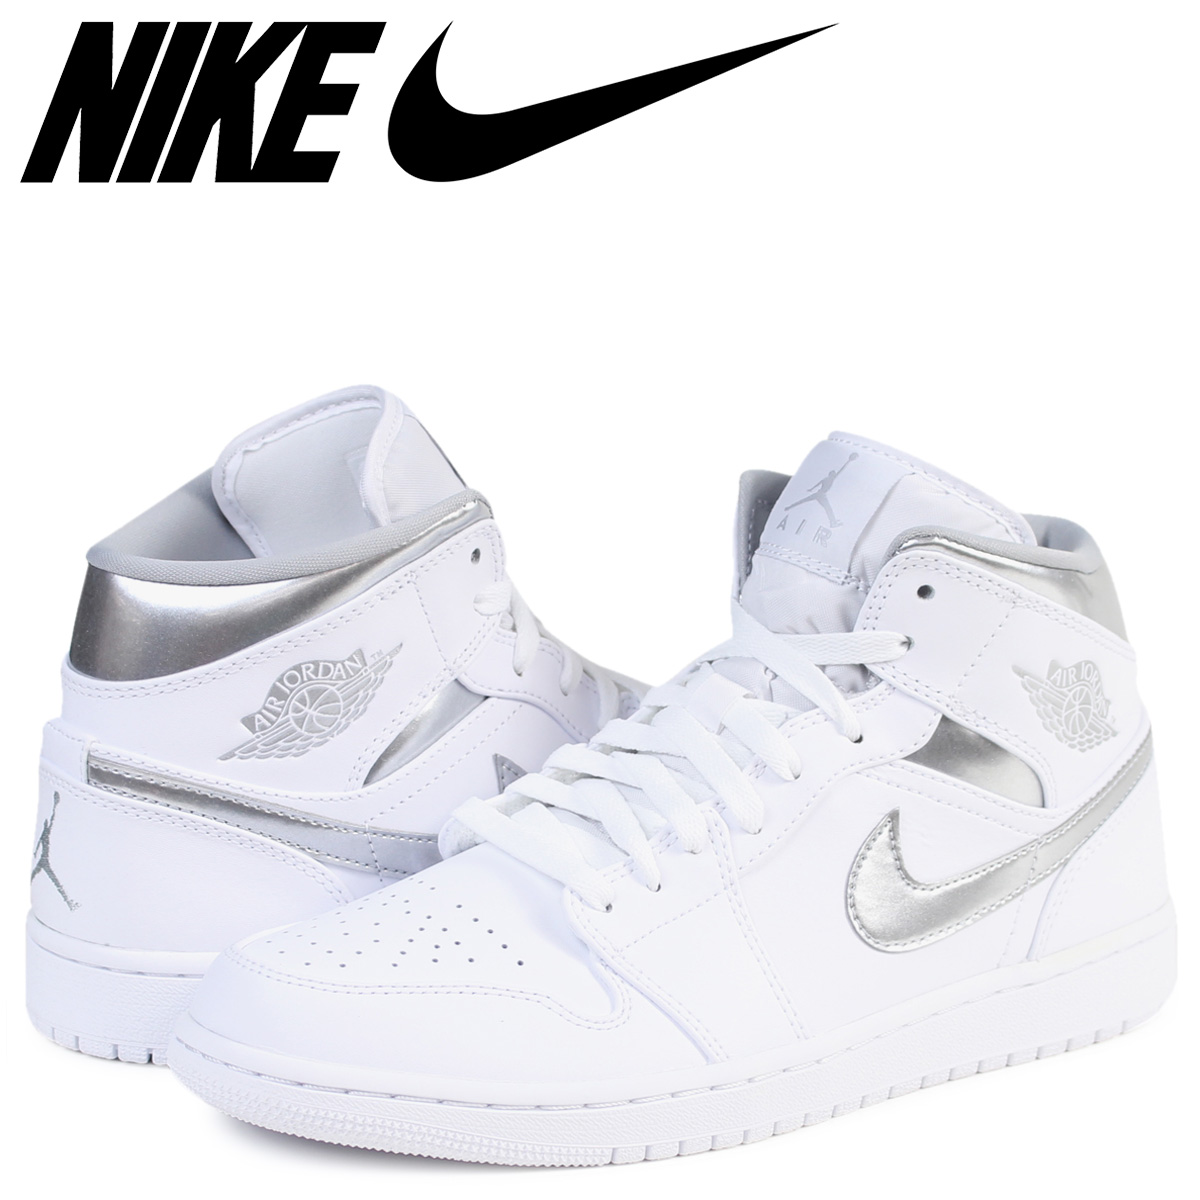 d7e53003e108fe ALLSPORTS  NIKE Nike Air Jordan 1 sneakers AIR JORDAN 1 MID PURE MONEY men  554